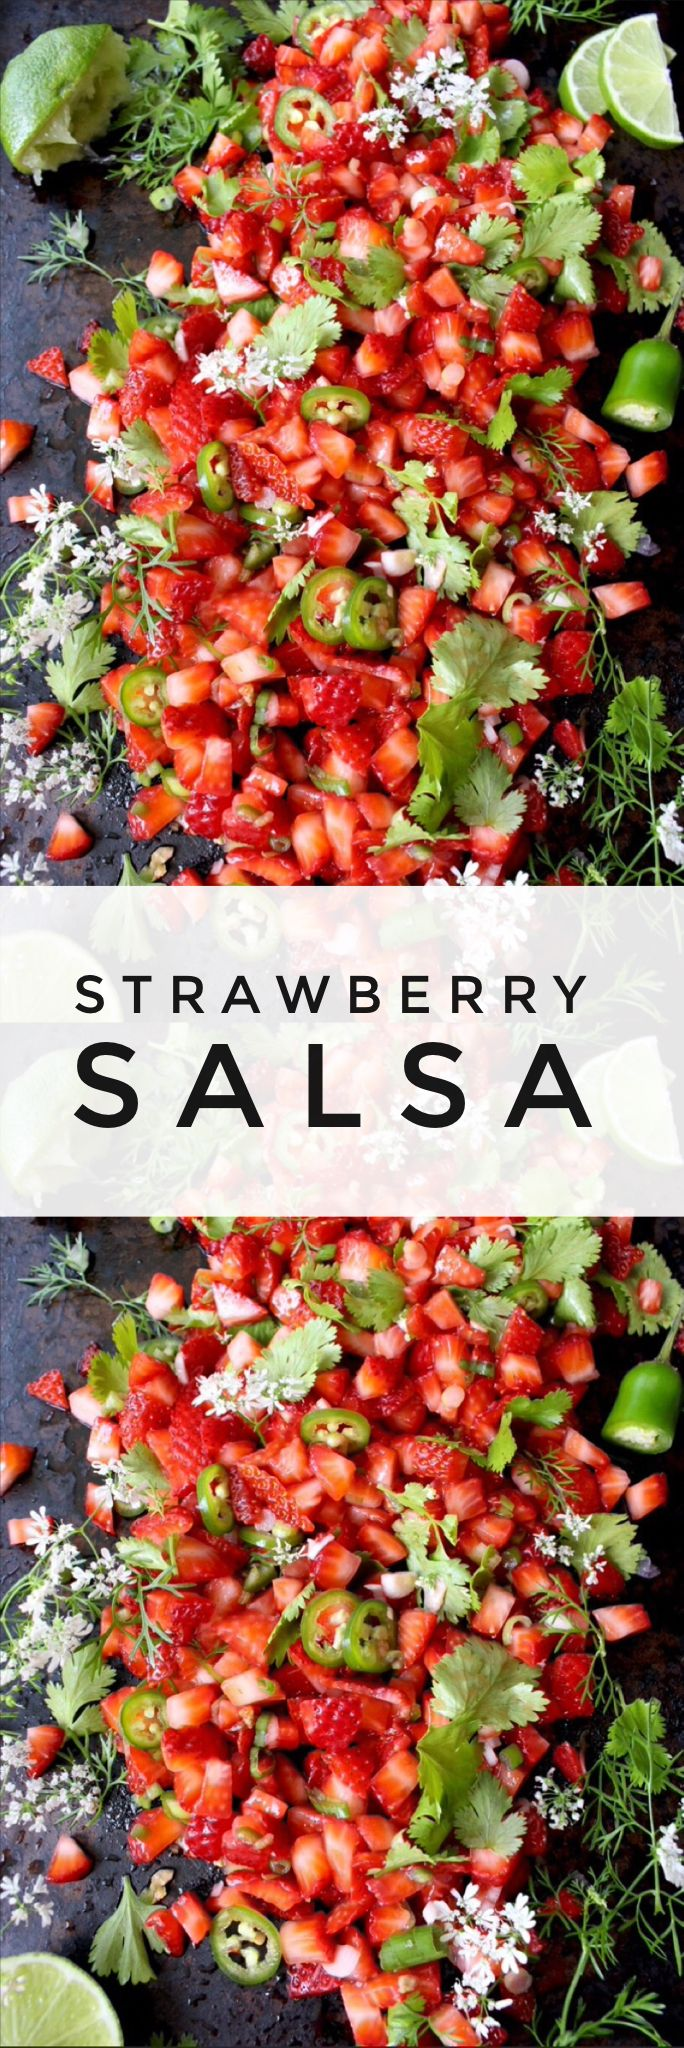 Strawberry Salsa Recipe | CiaoFlorentina.com @CiaoFlorentina